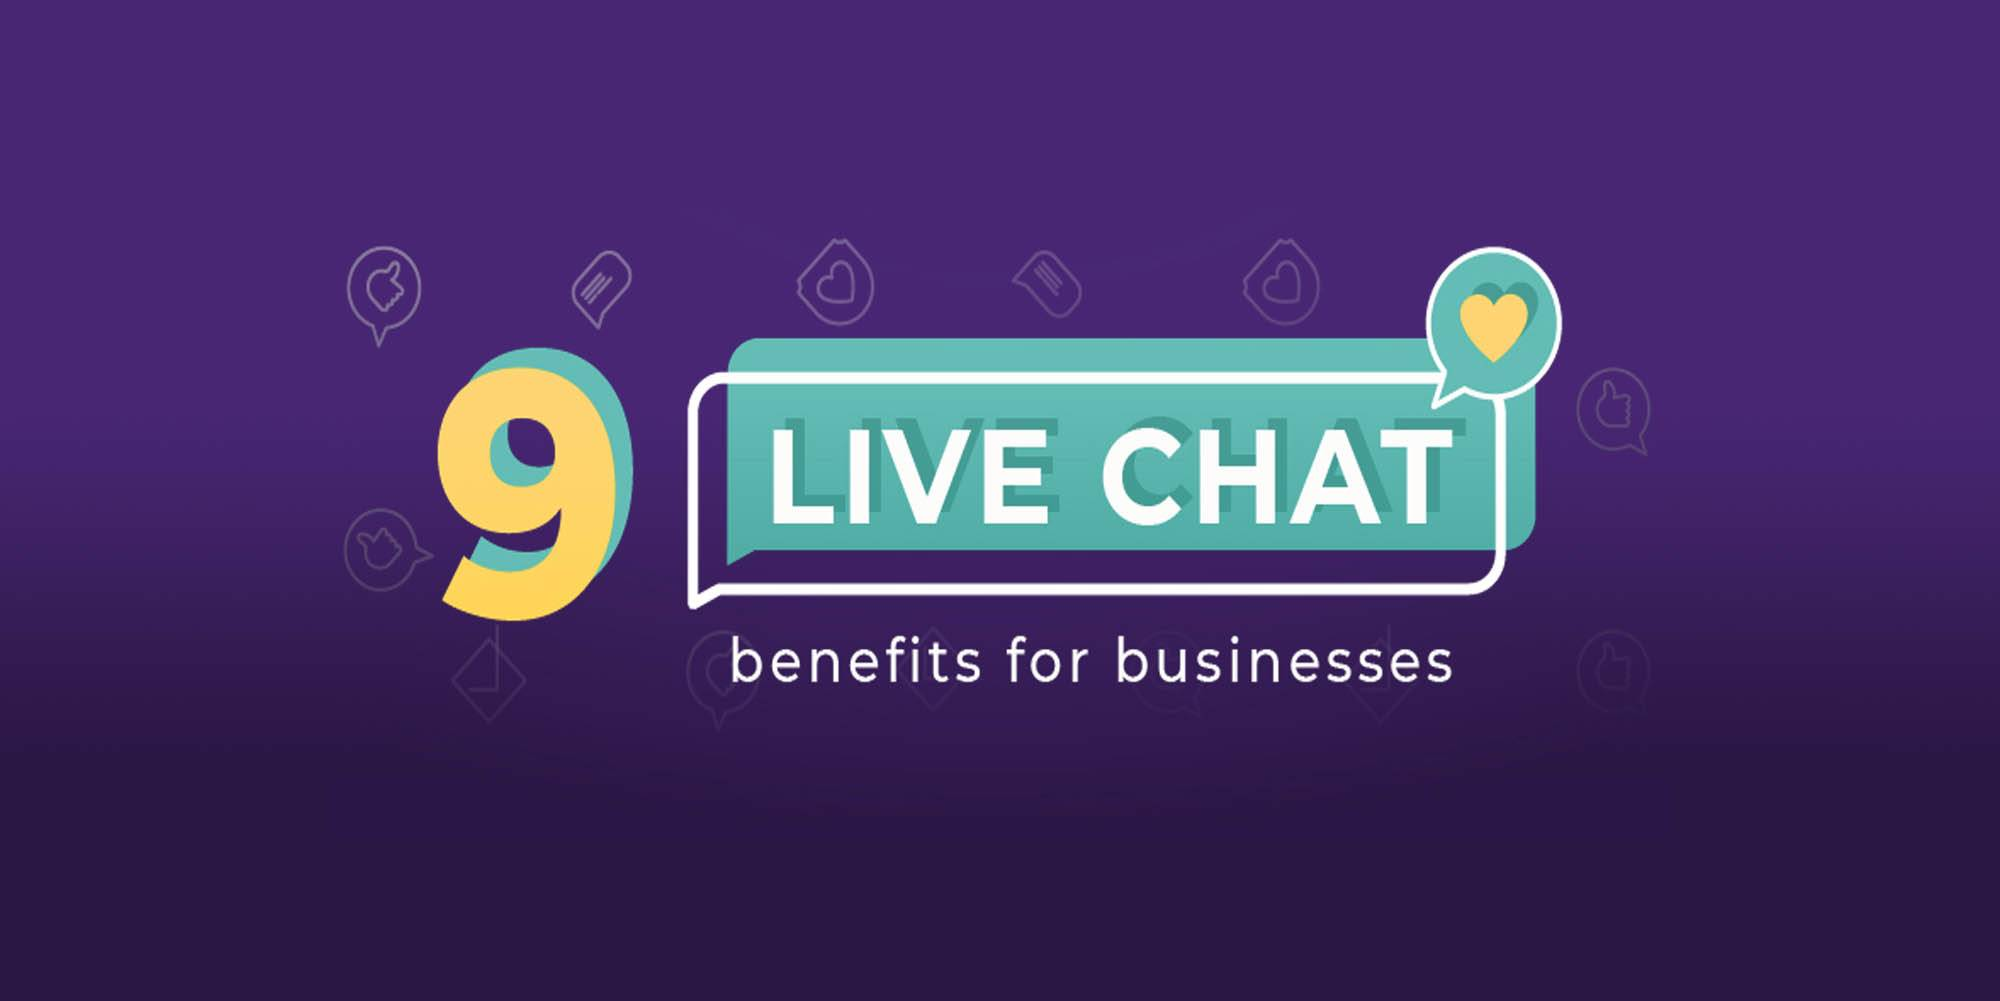 9 live chat benefits for businesses